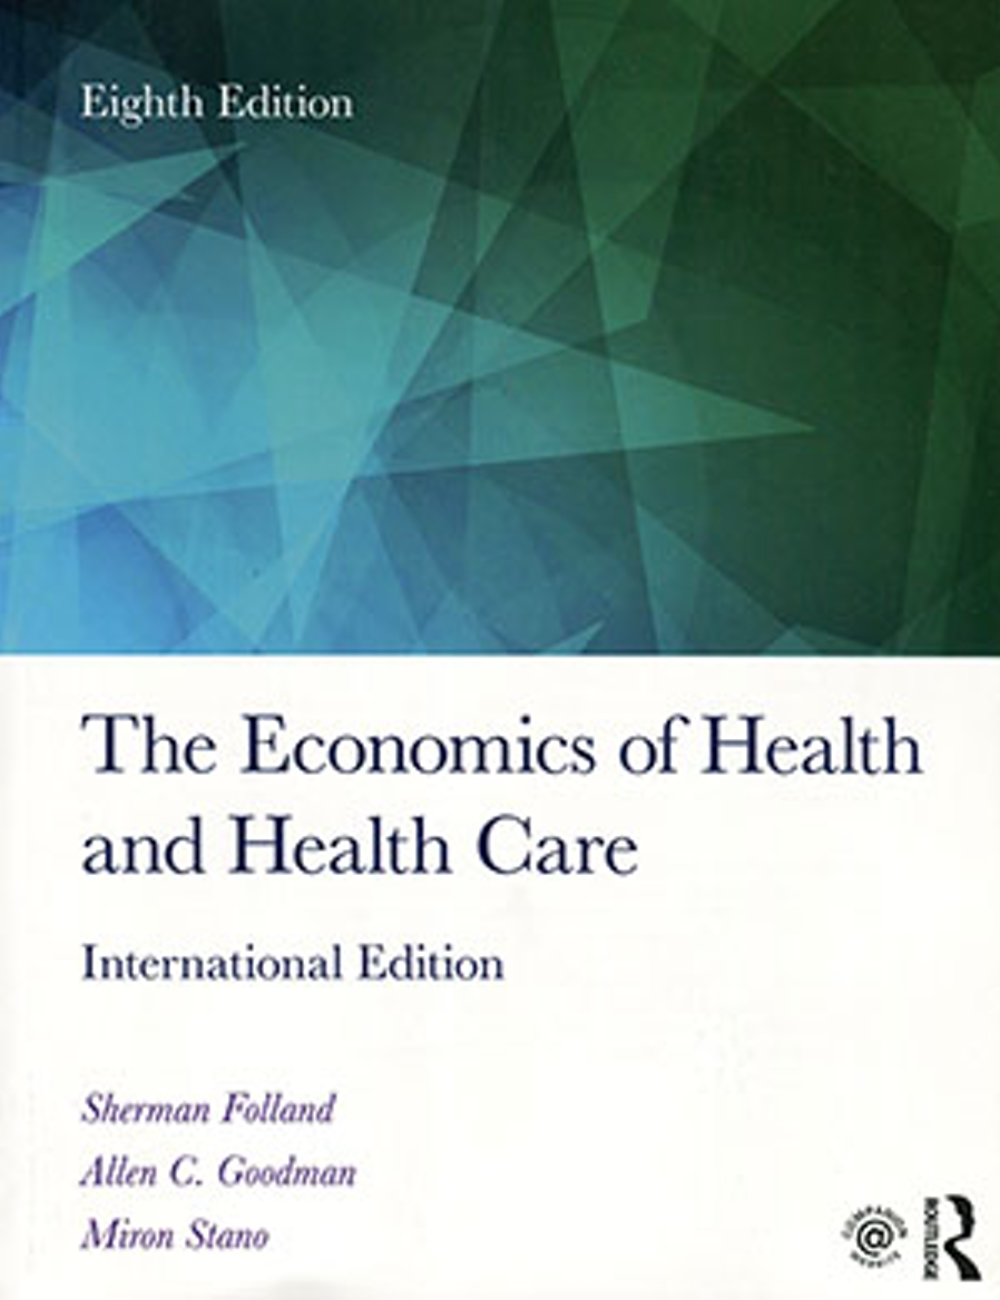 The Economics of Health and Health Care(8版)